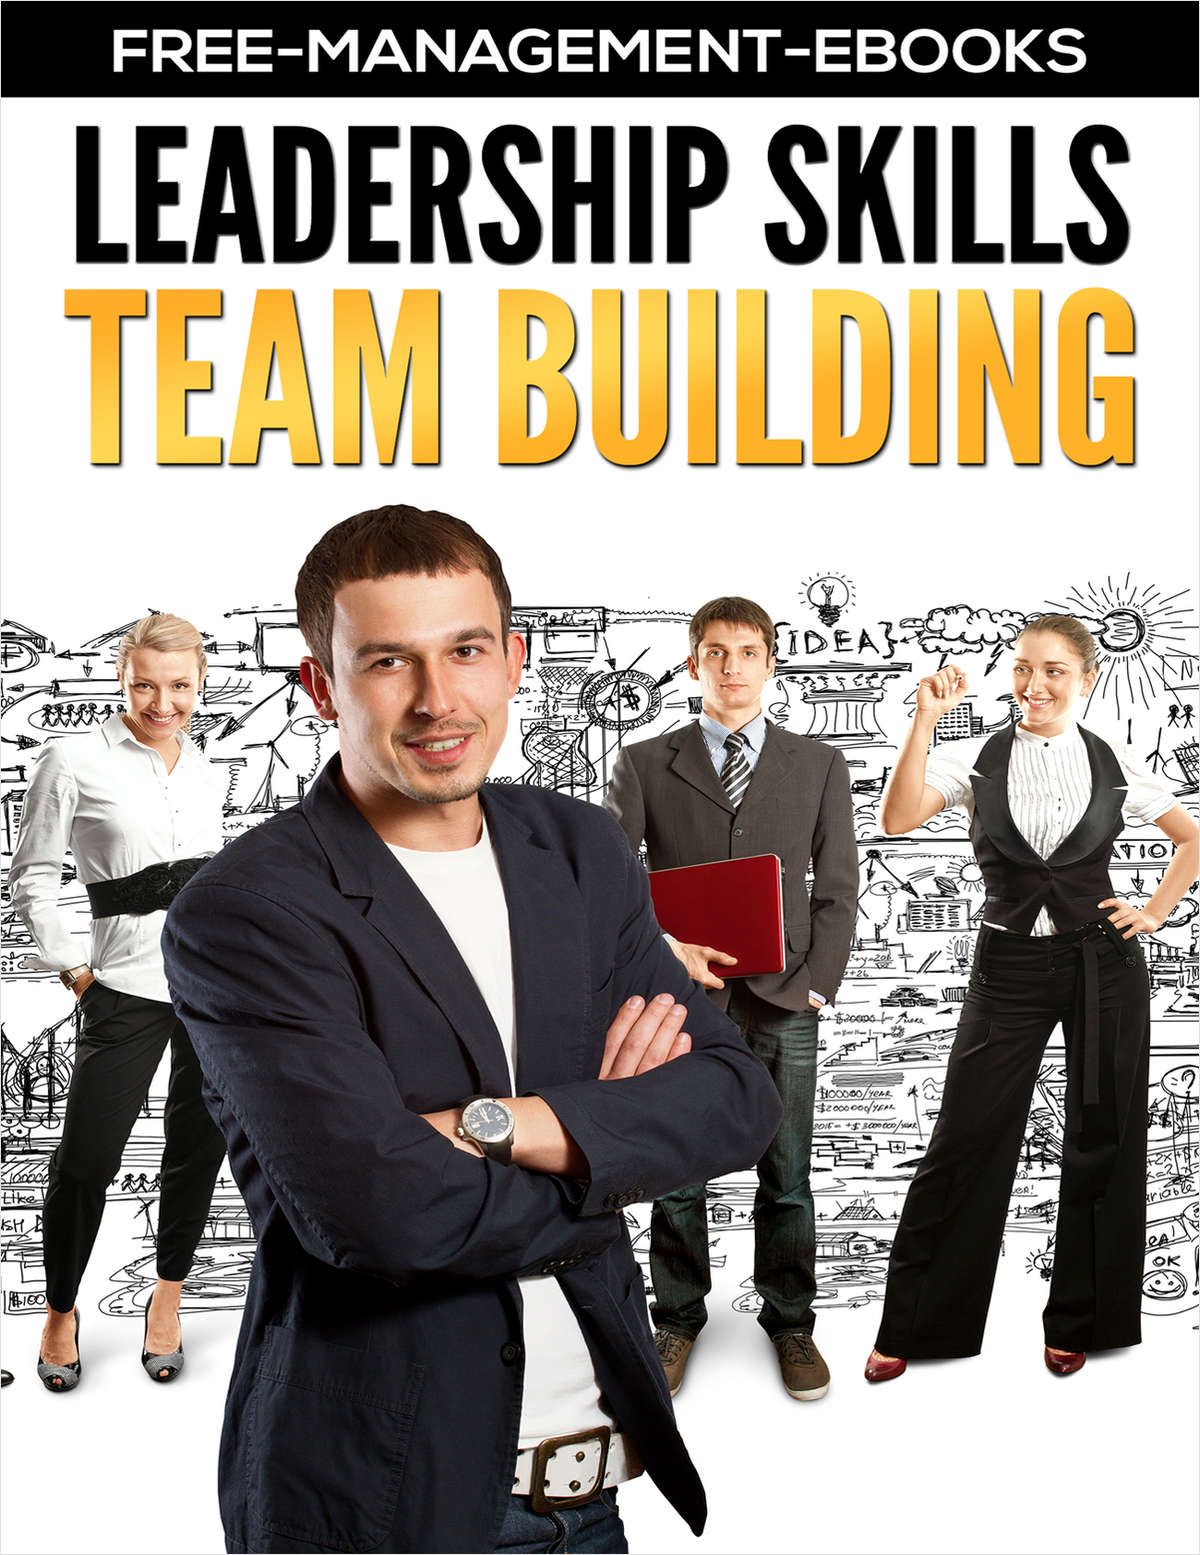 Team Building - Developing Your Leadership Skills